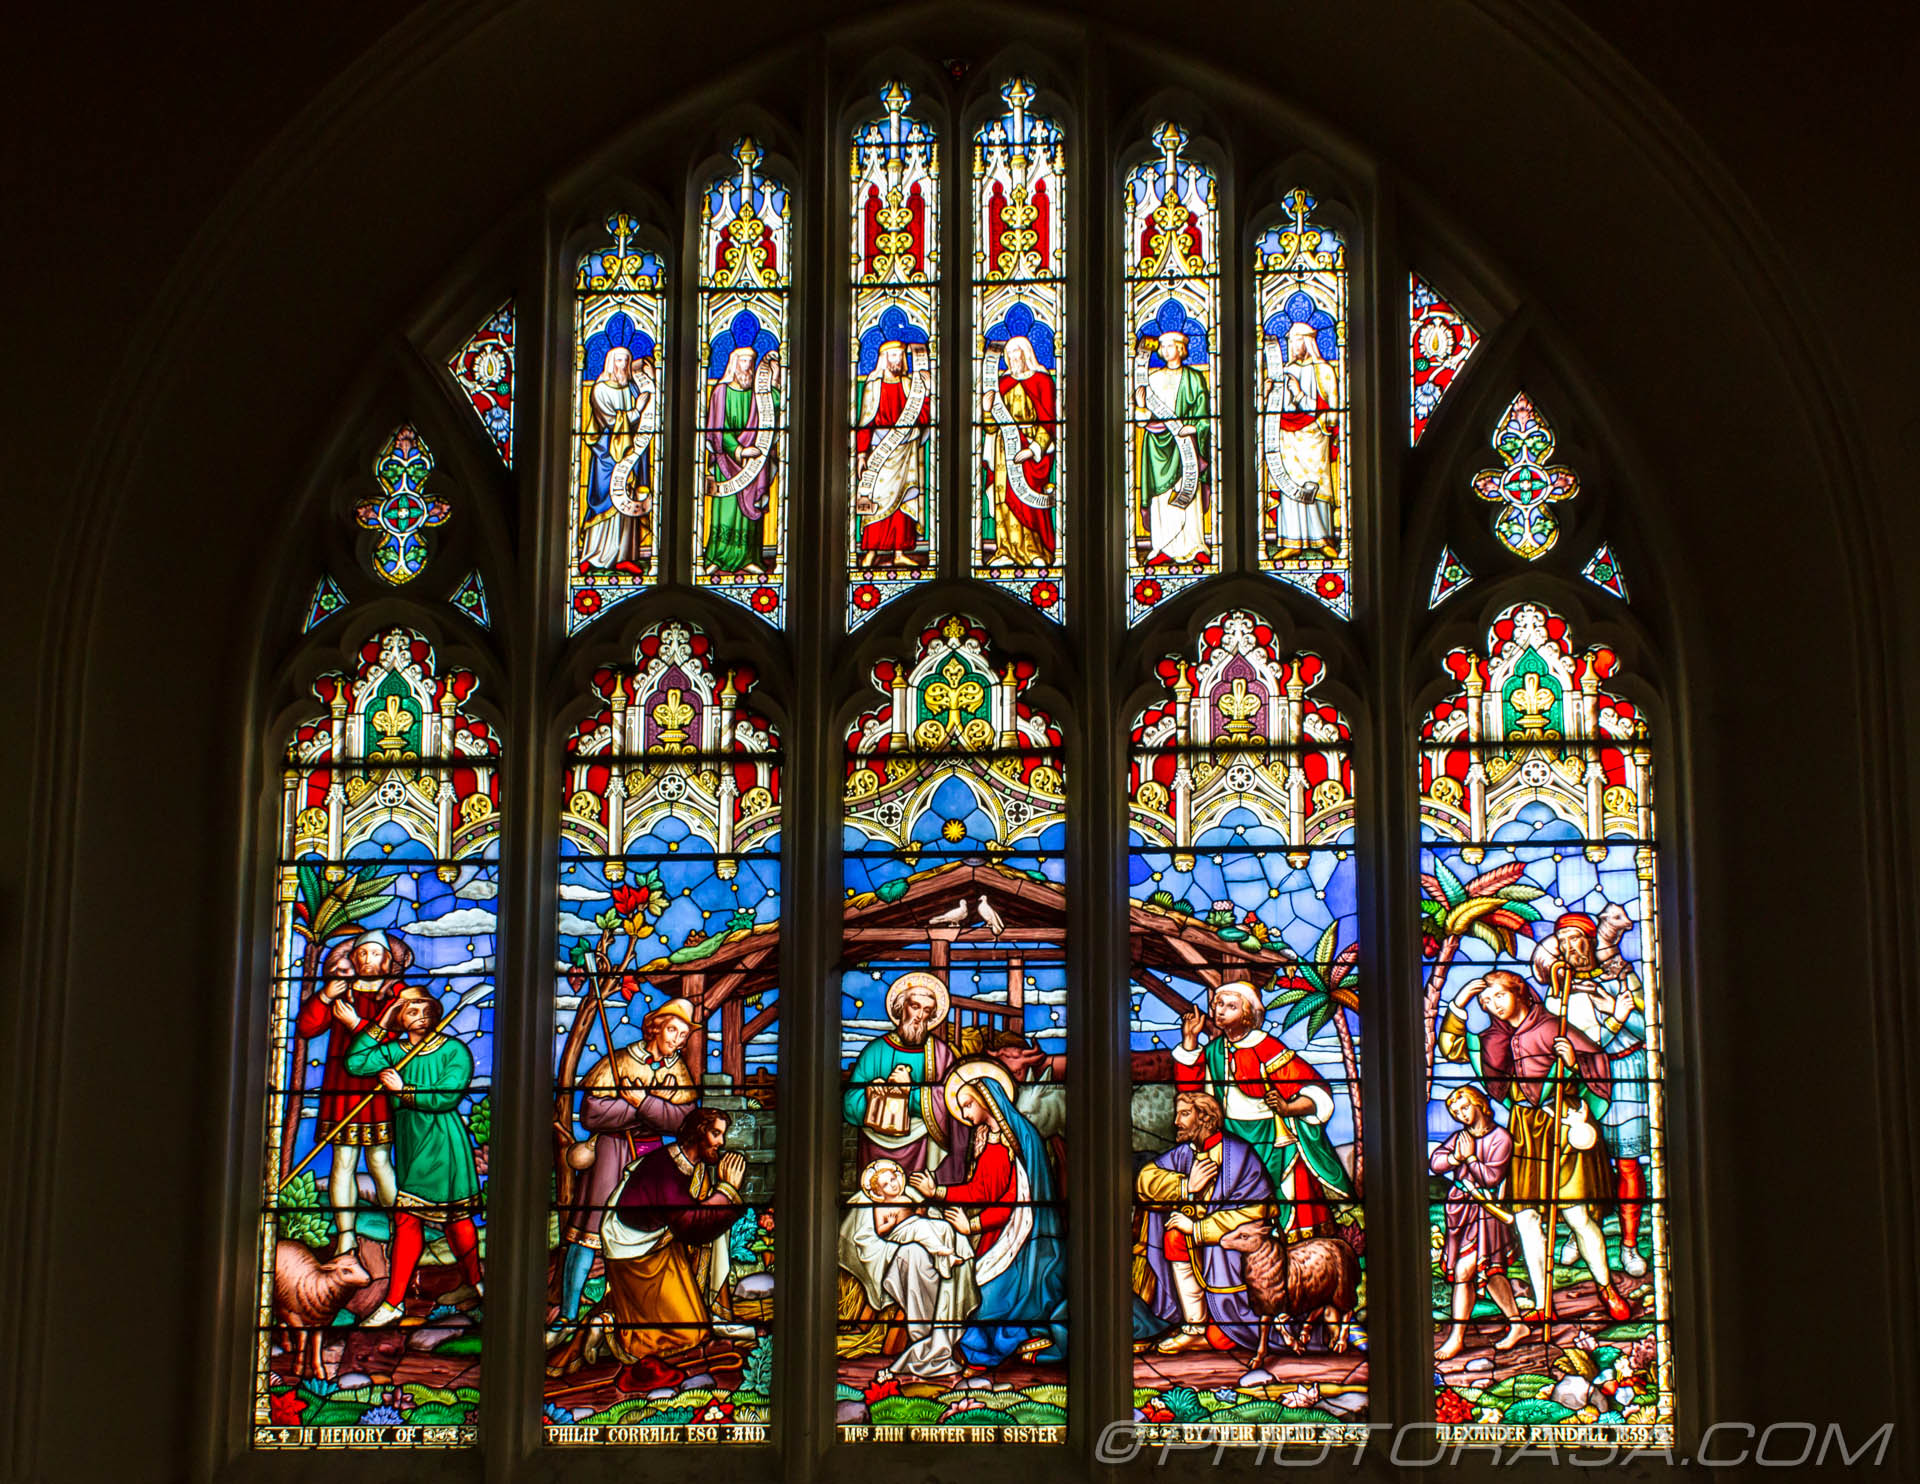 http://photorasa.com/inside-all-saints-church-in-maidstone/stained-glass-of-the-birth-of-christ-and-nativity/